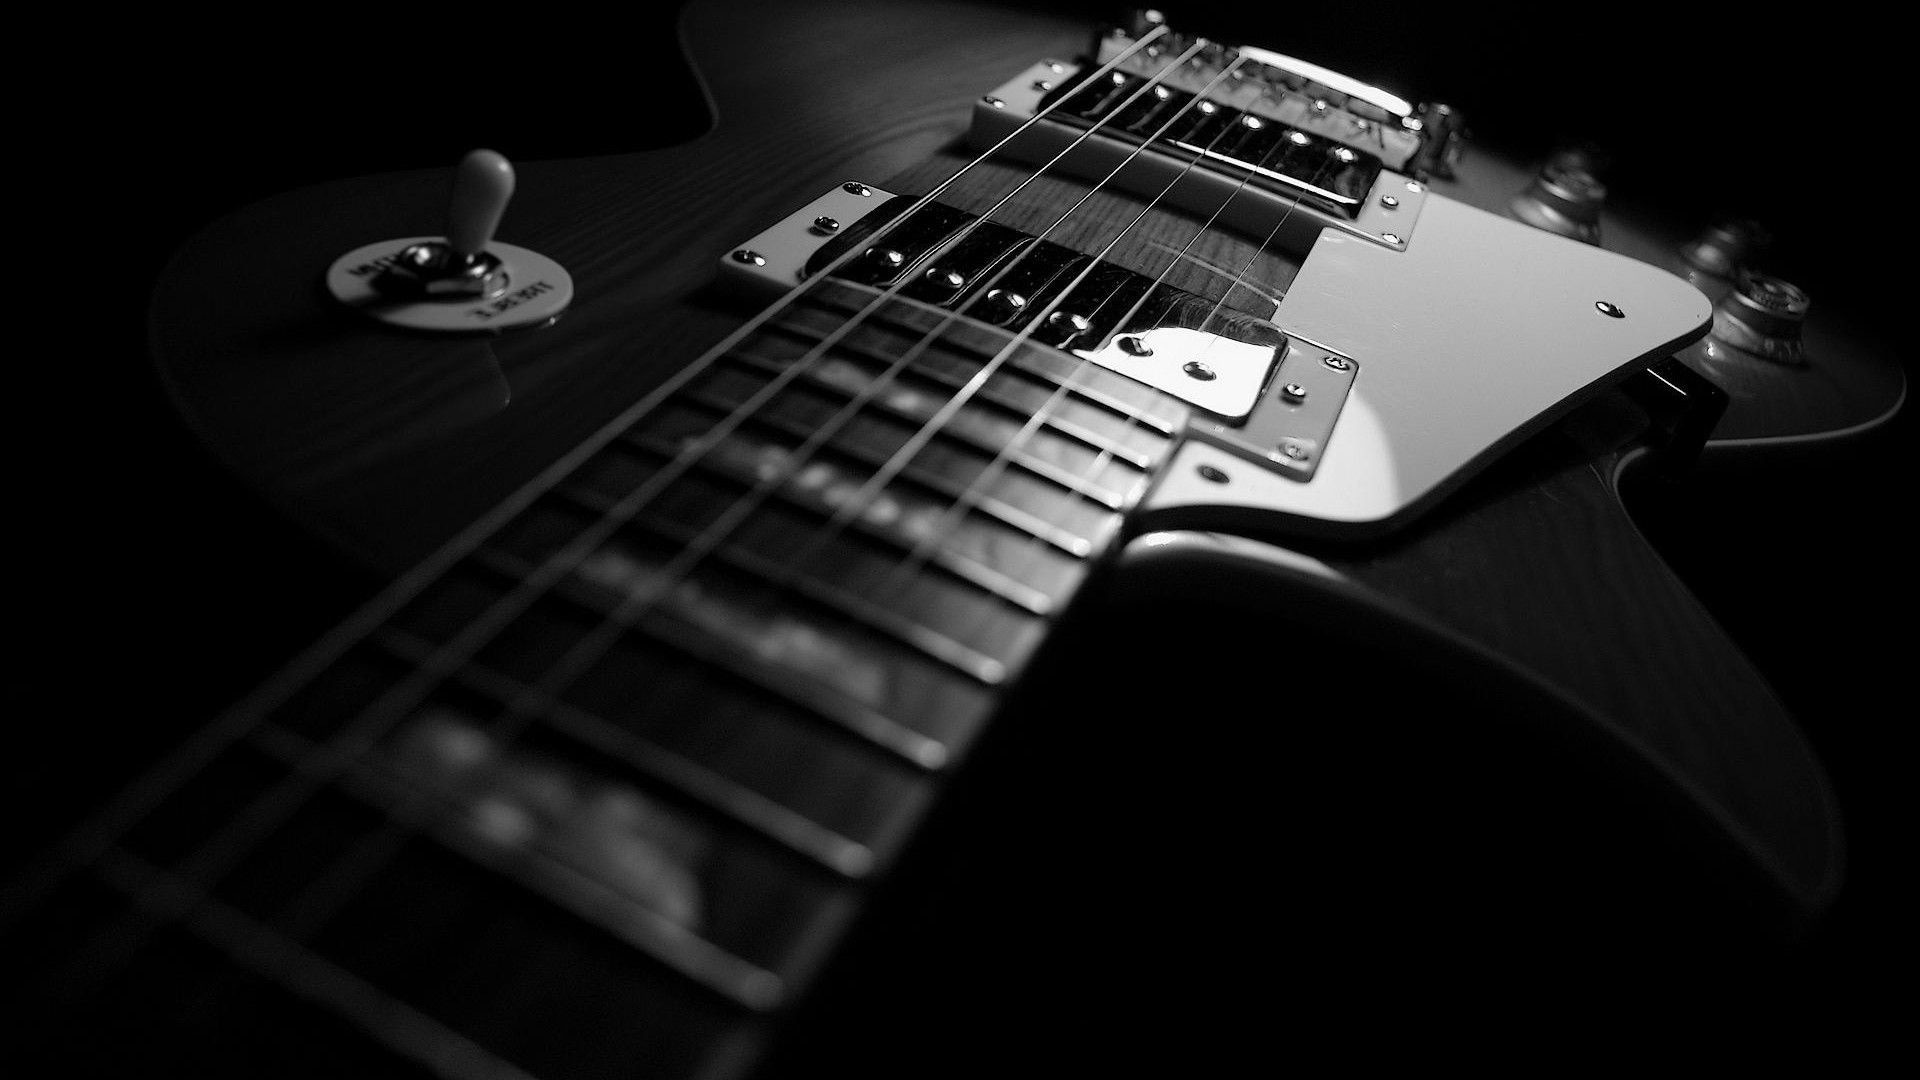 985332-cool-cool-guitar-backgrounds-1920x1080.jpg